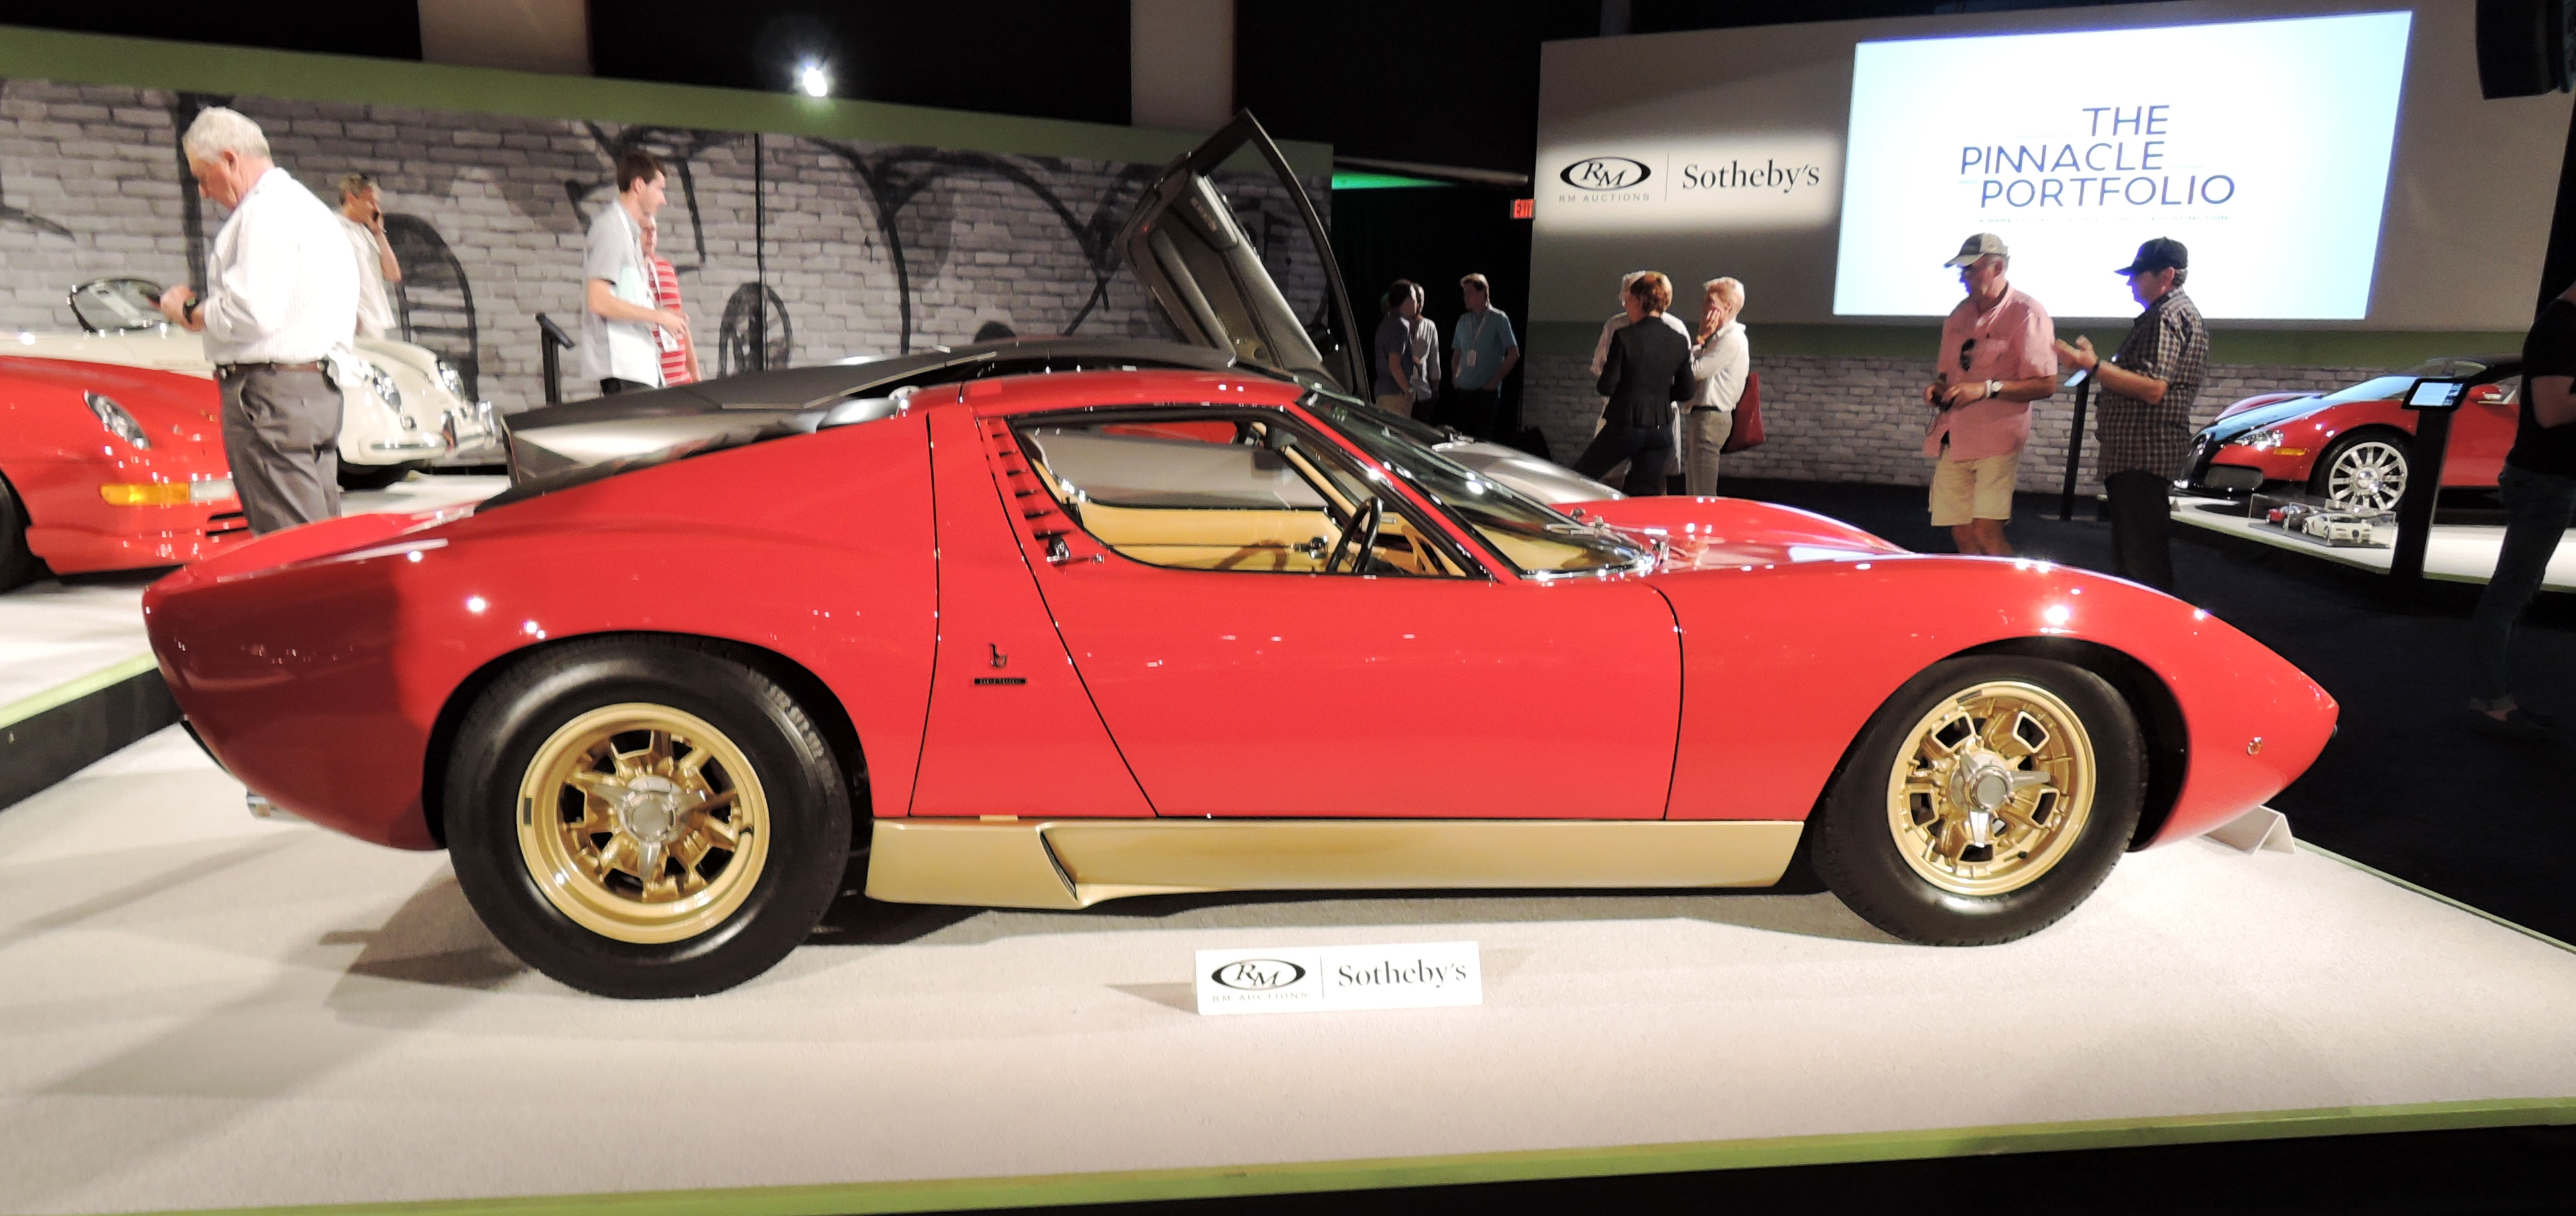 red 1971 Lamborghini Miura P400 SV by Bertone in The Pinnacle Portfolio at RM Sotheby's - classic car auctions